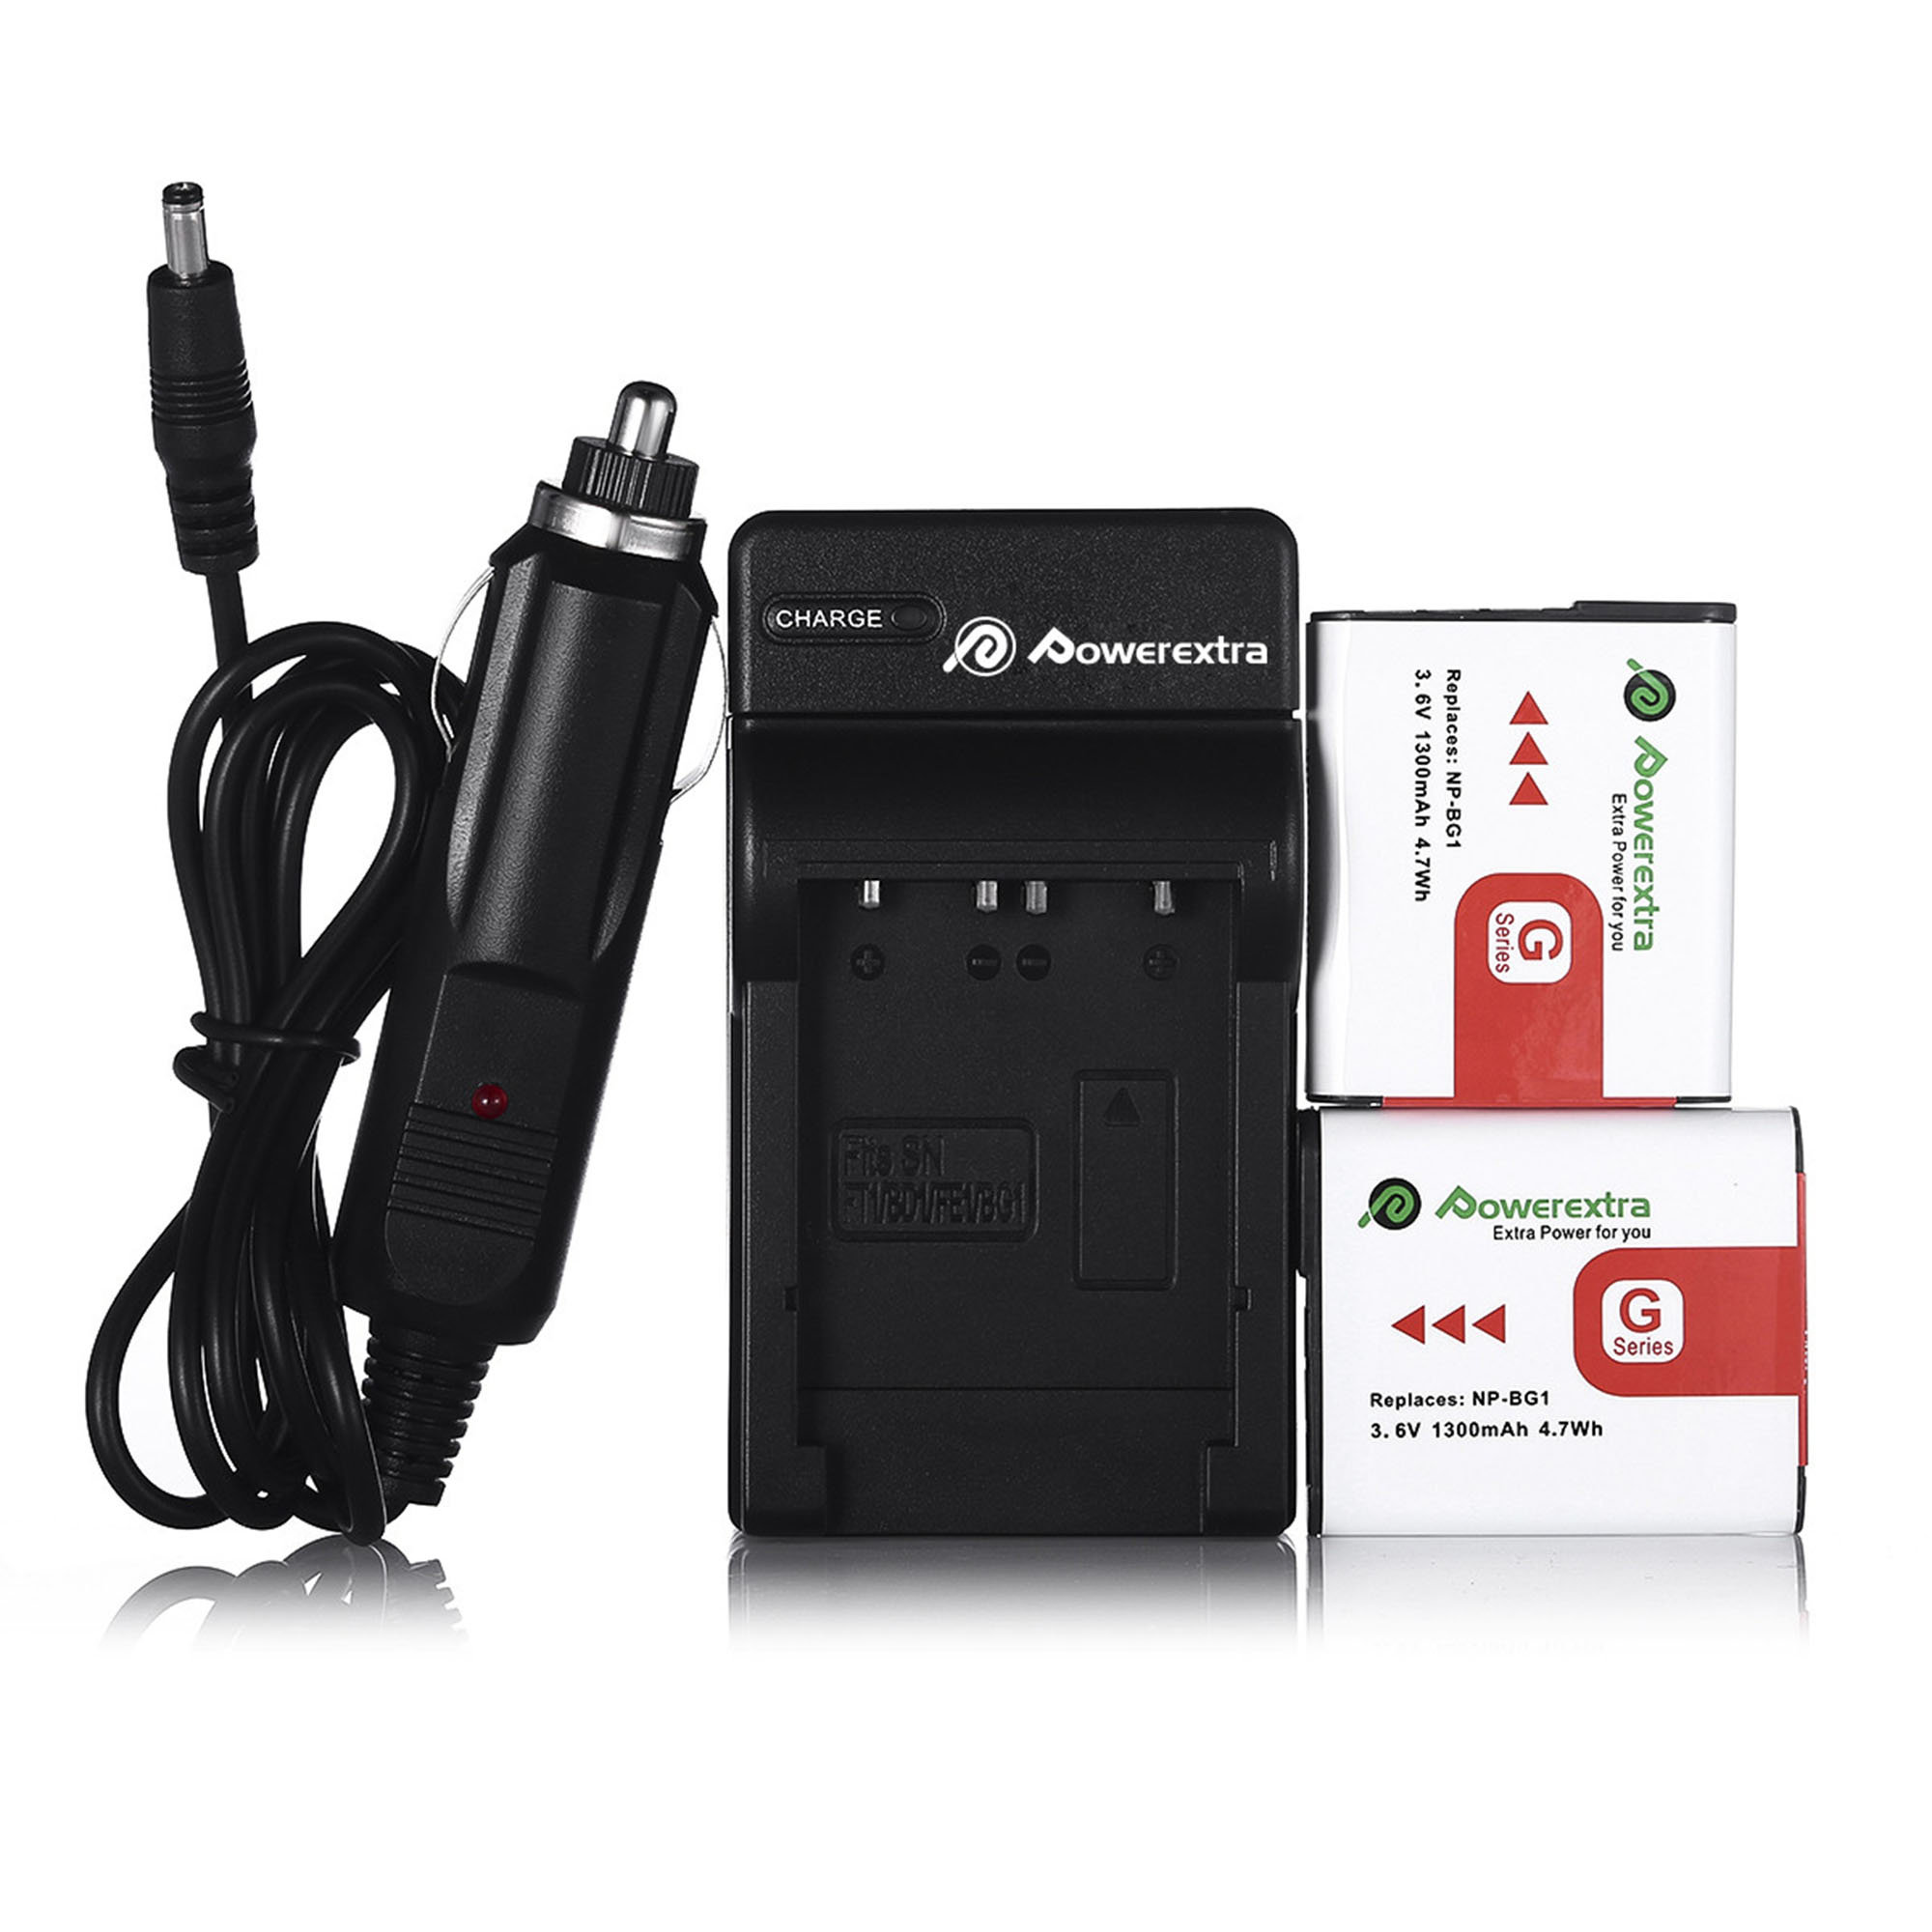 Powerextra 2-Pack 3.6v 1300mAh Replacement Battery + Battery Charger for Sony NP-BG1 Type G and Sony W Series Digital Camera